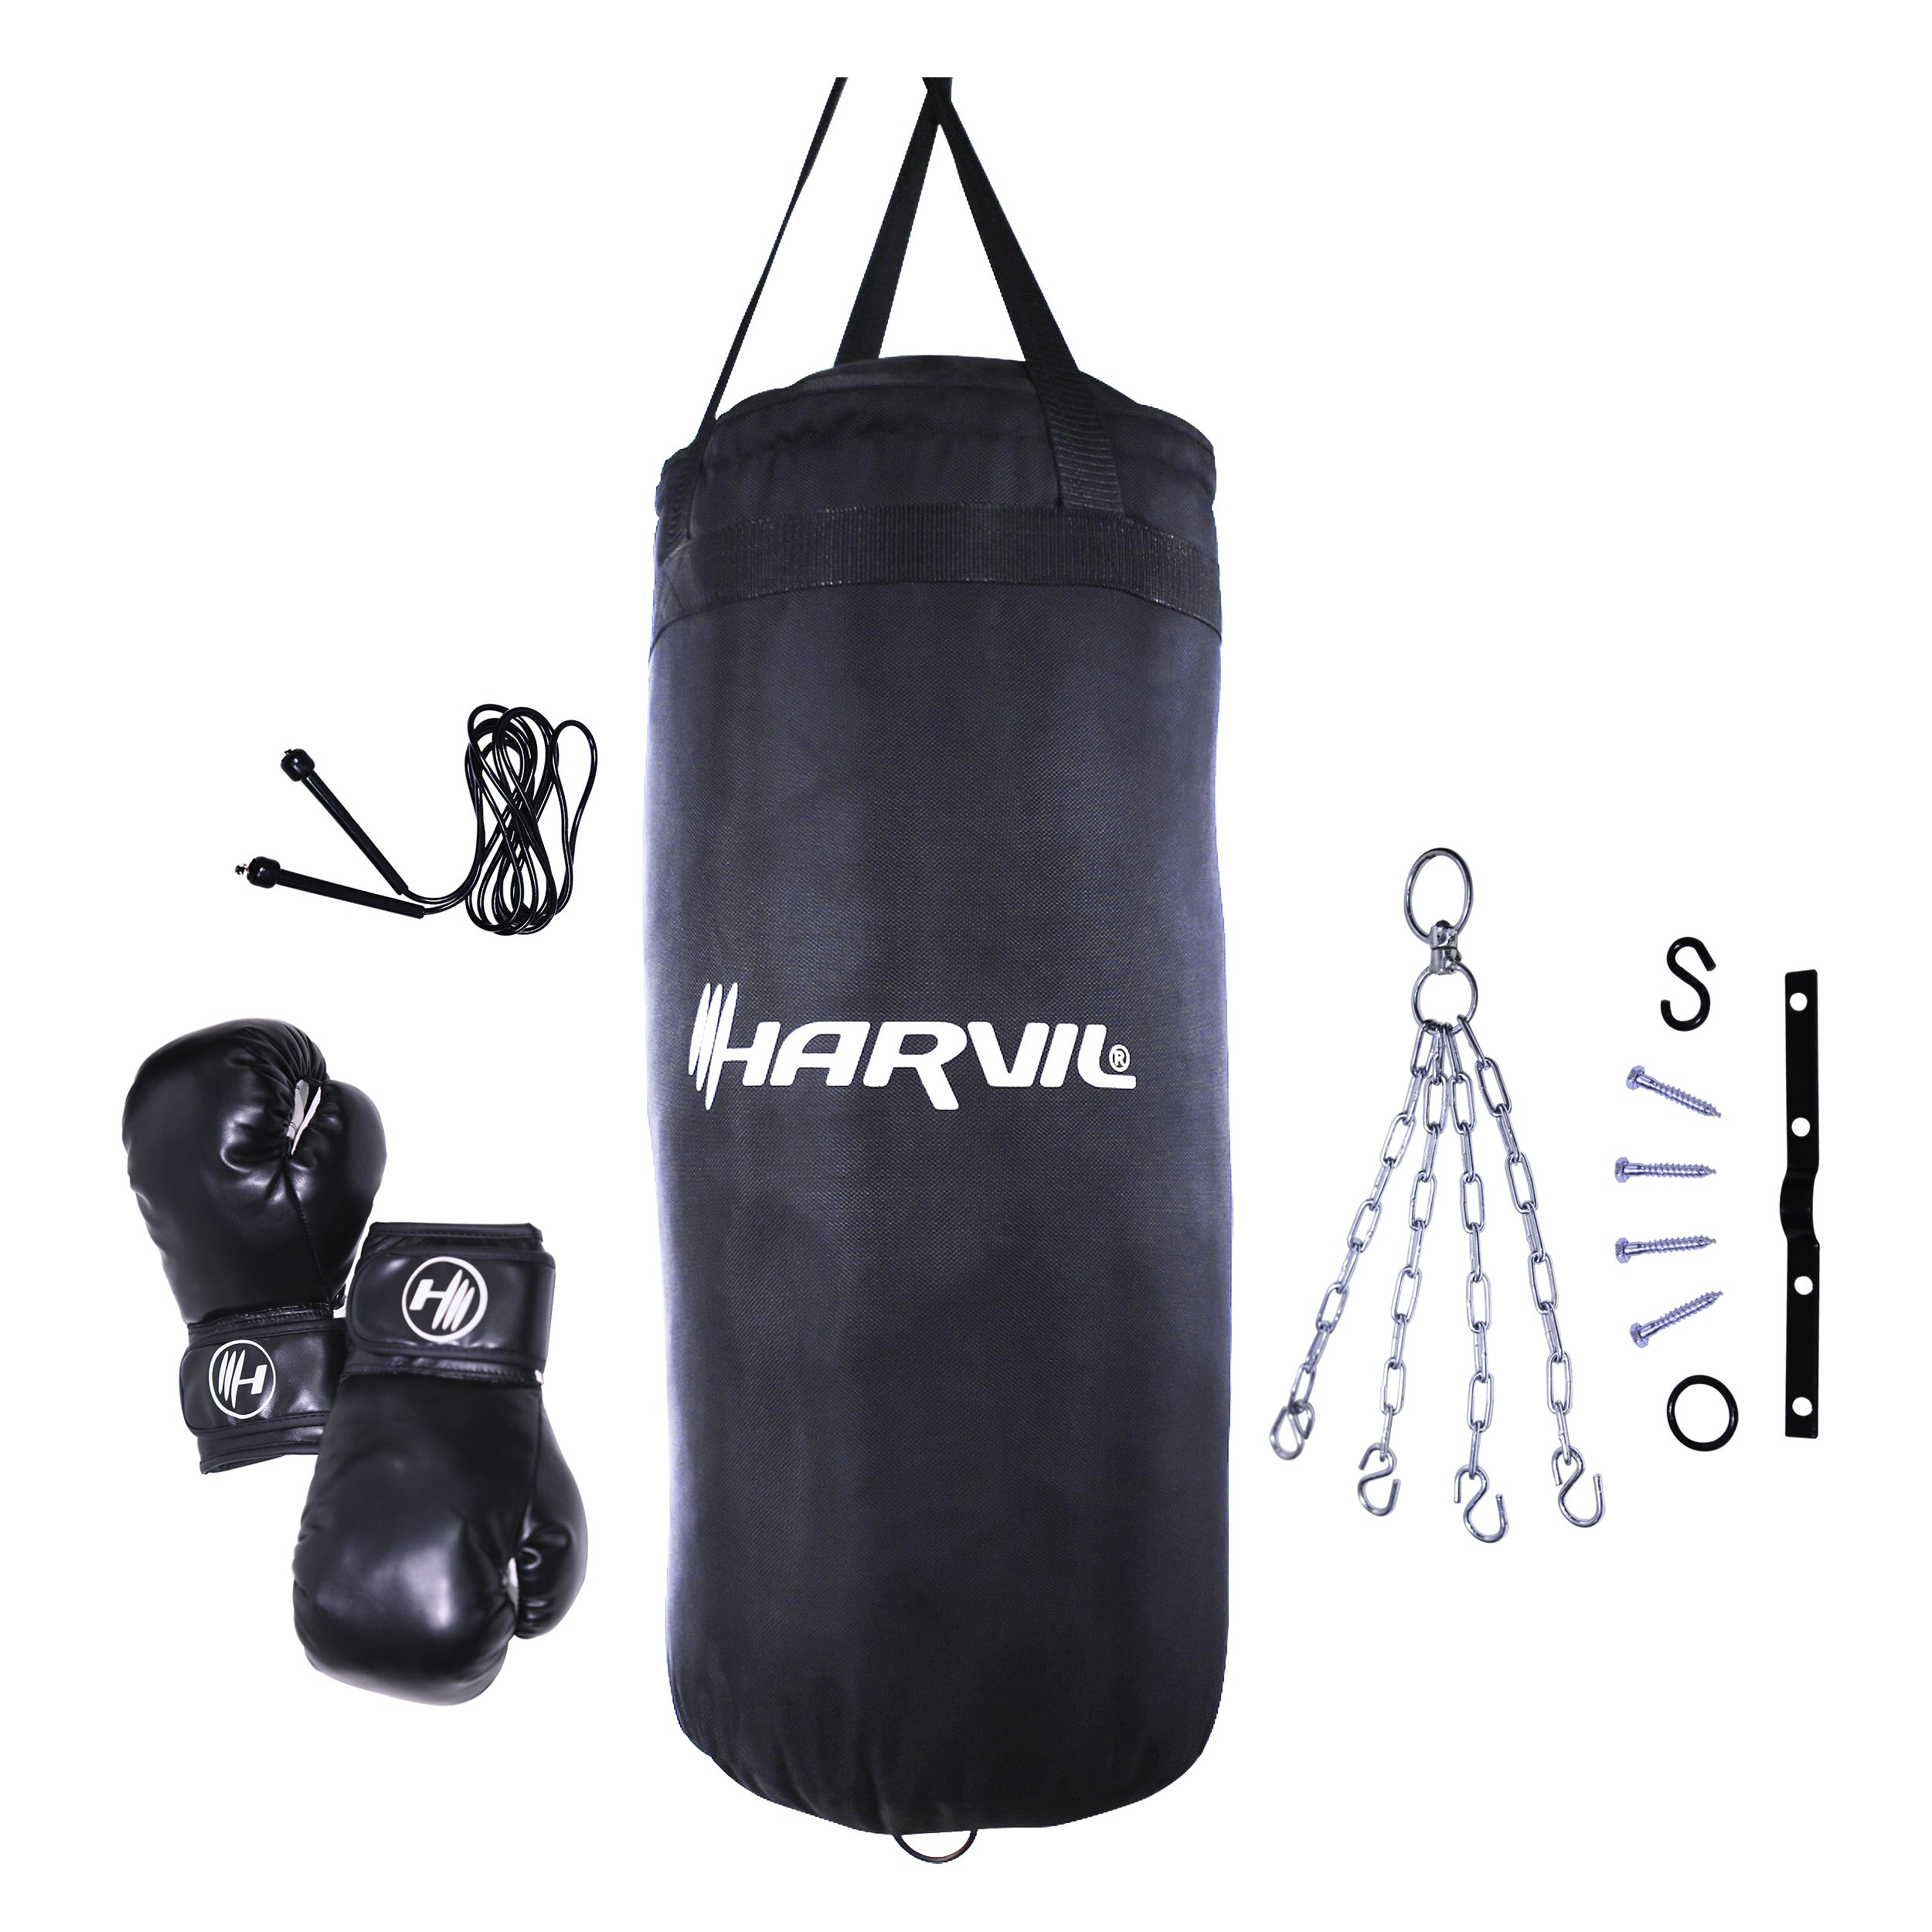 Harvil Kids Boxing Set with 25-Pound Punching Bag, Boxing Gloves, Jumping Rope, Ceiling Attachment and Hanging Chain